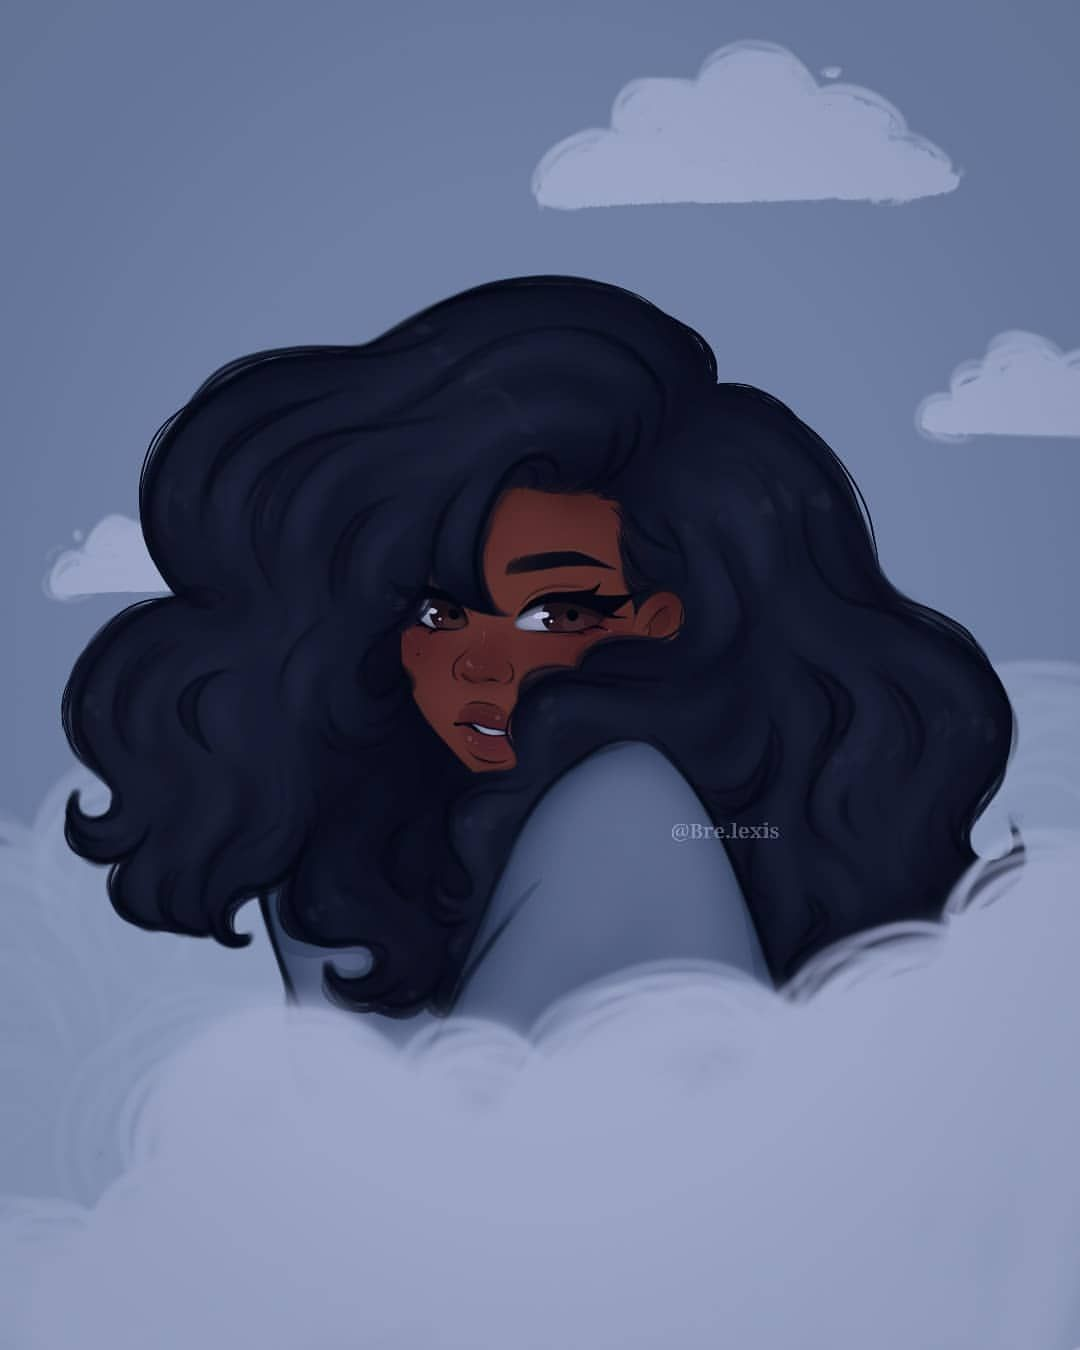 Black Girl Aesthetic Drawing : black, aesthetic, drawing, Art,fandoms,and, Writing, Inspiration